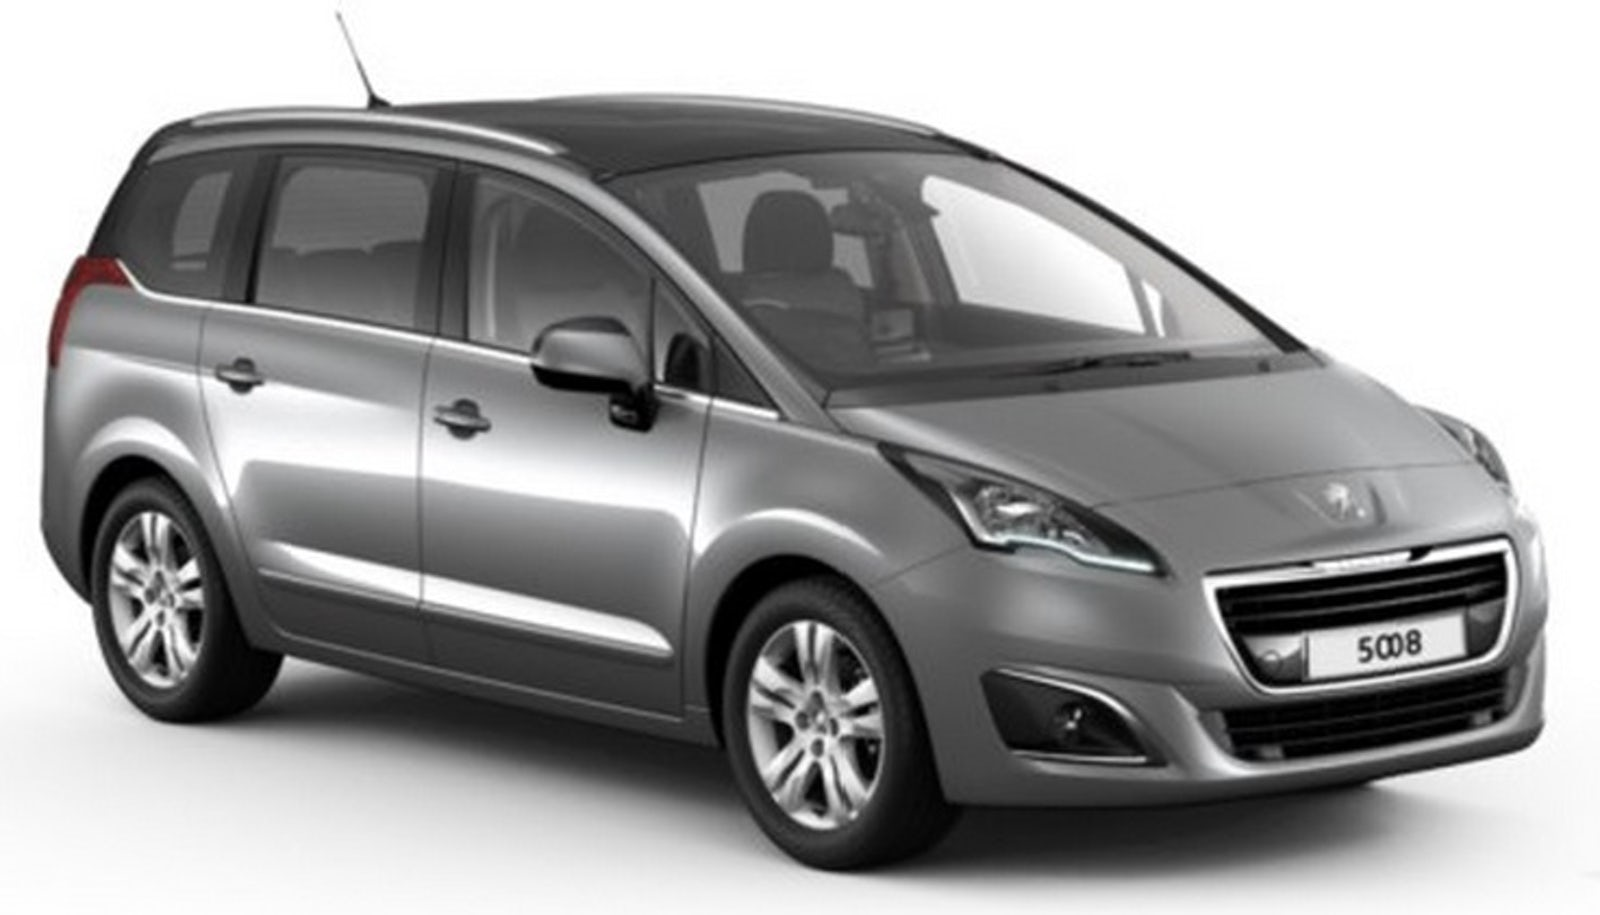 Peugeot 5008 colours guide and prices | carwow